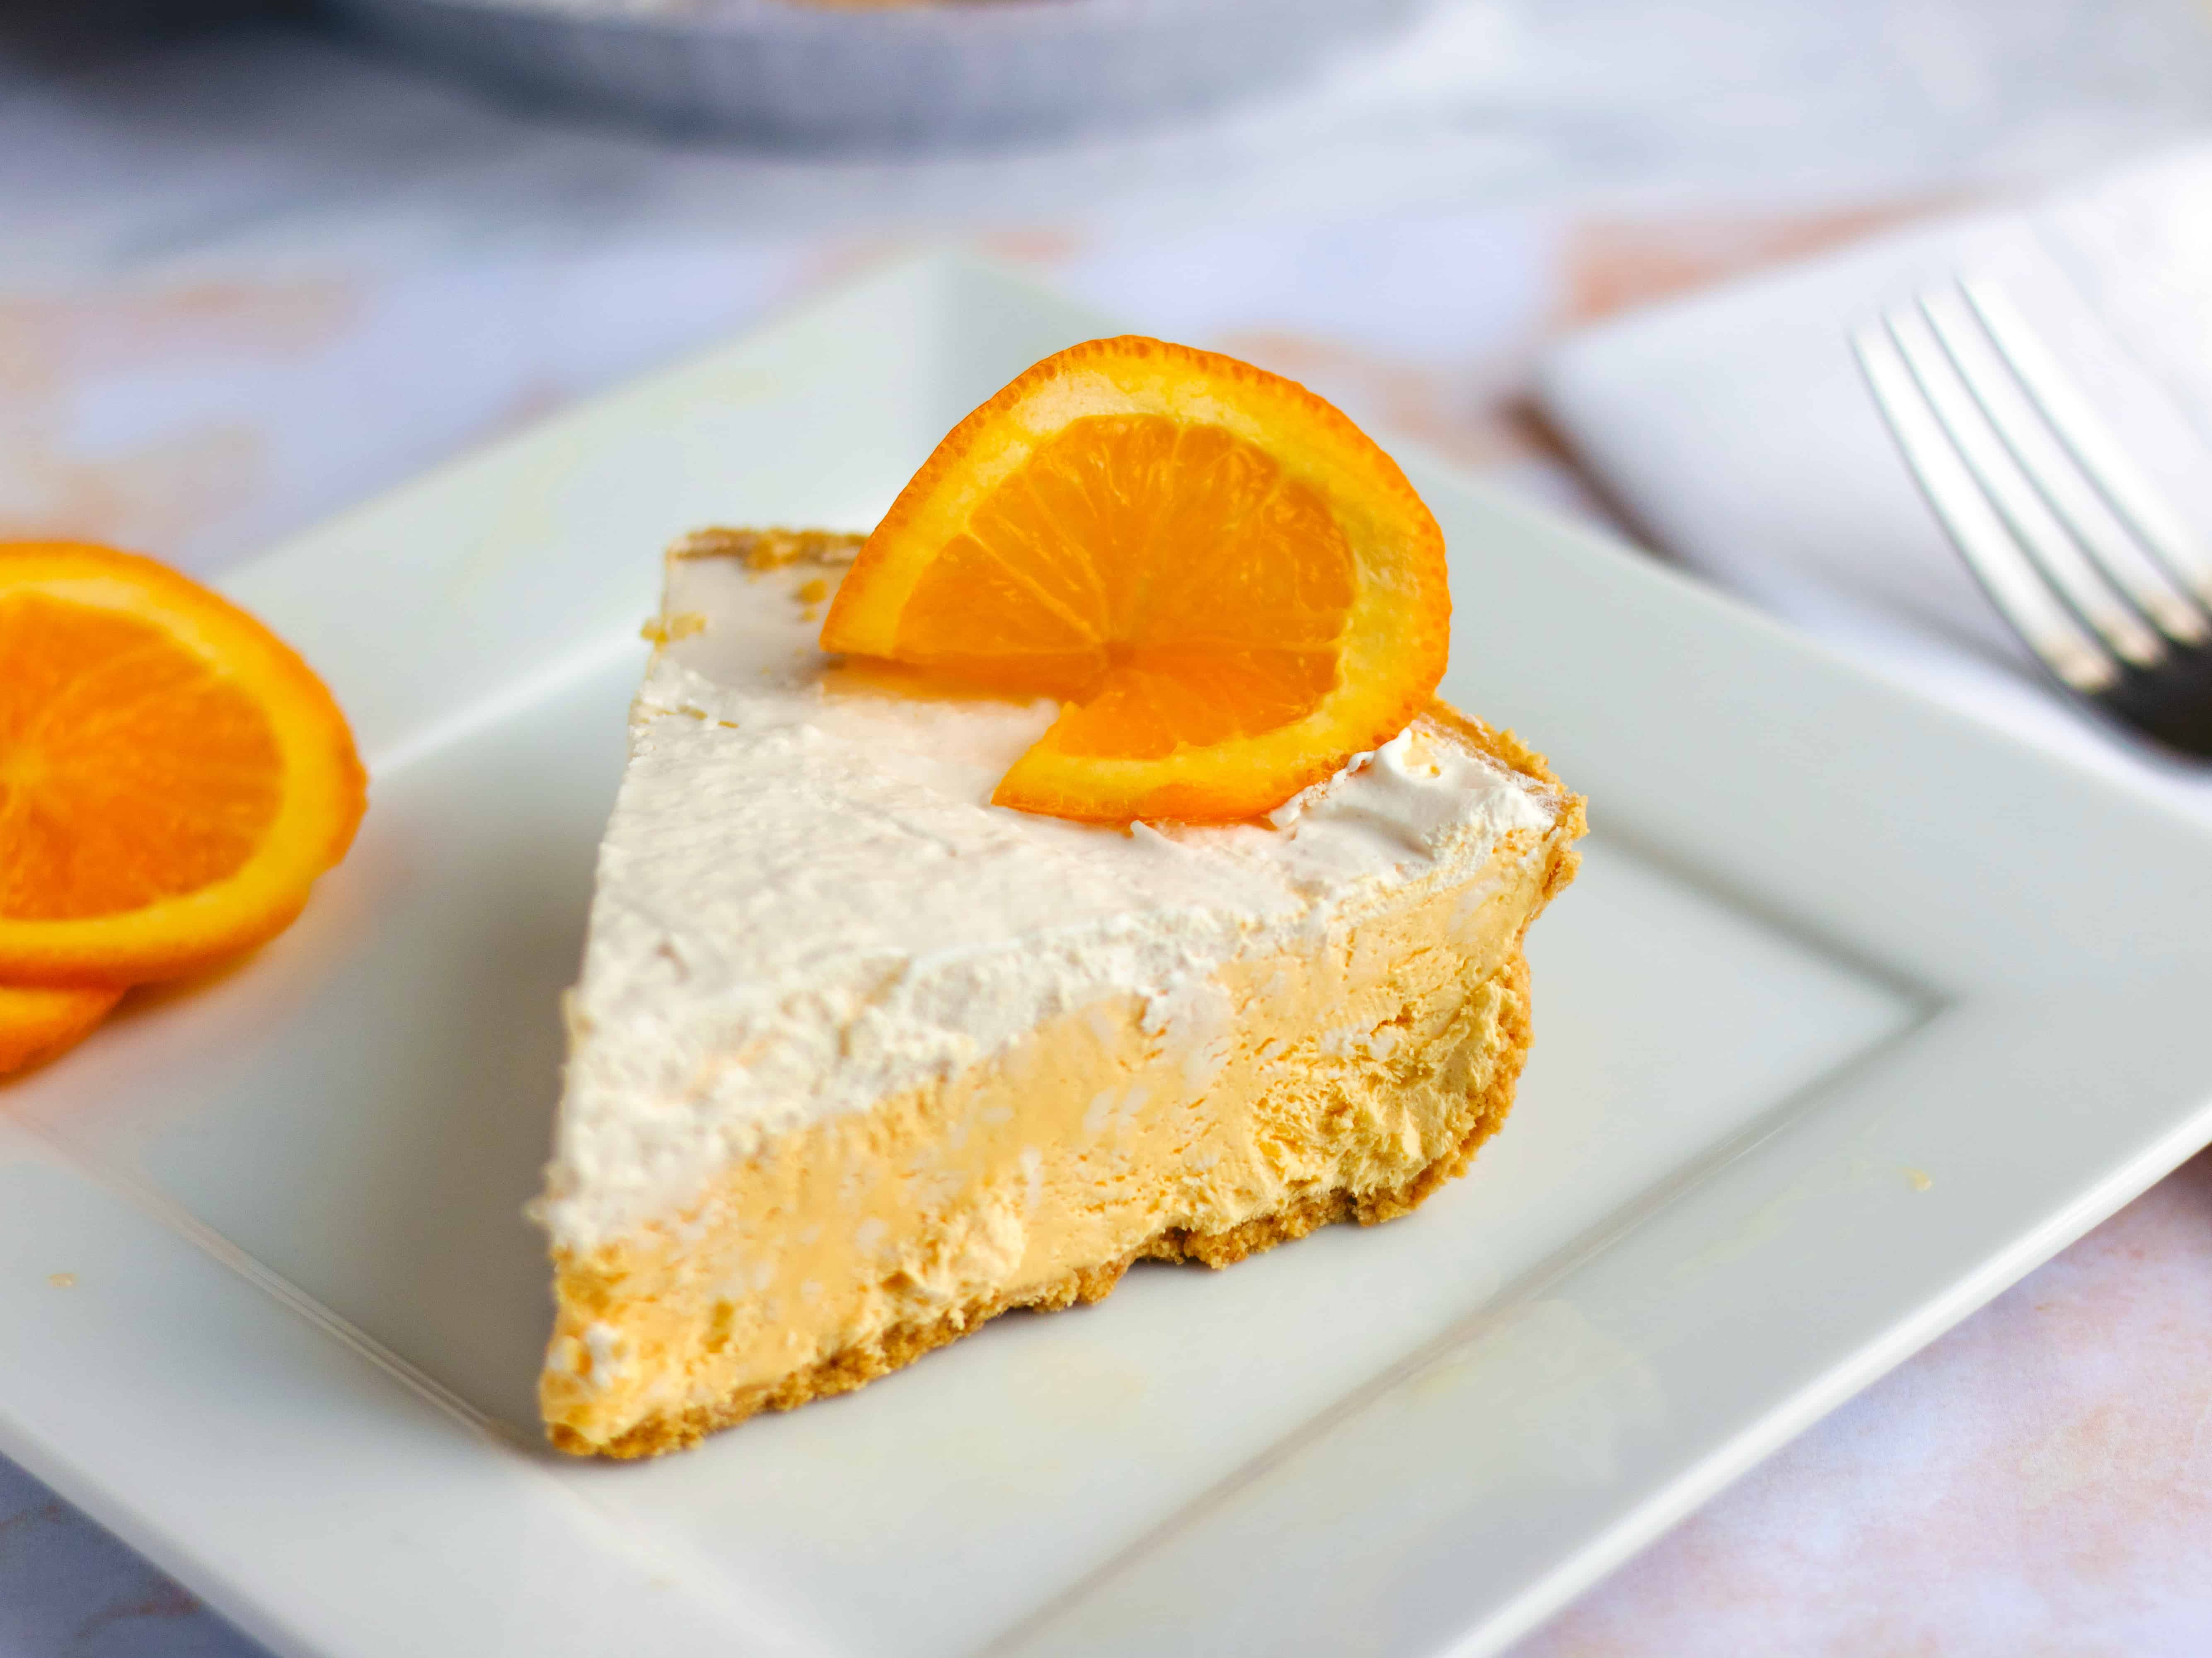 No Bake Orange Creamsicle Pie Recipe